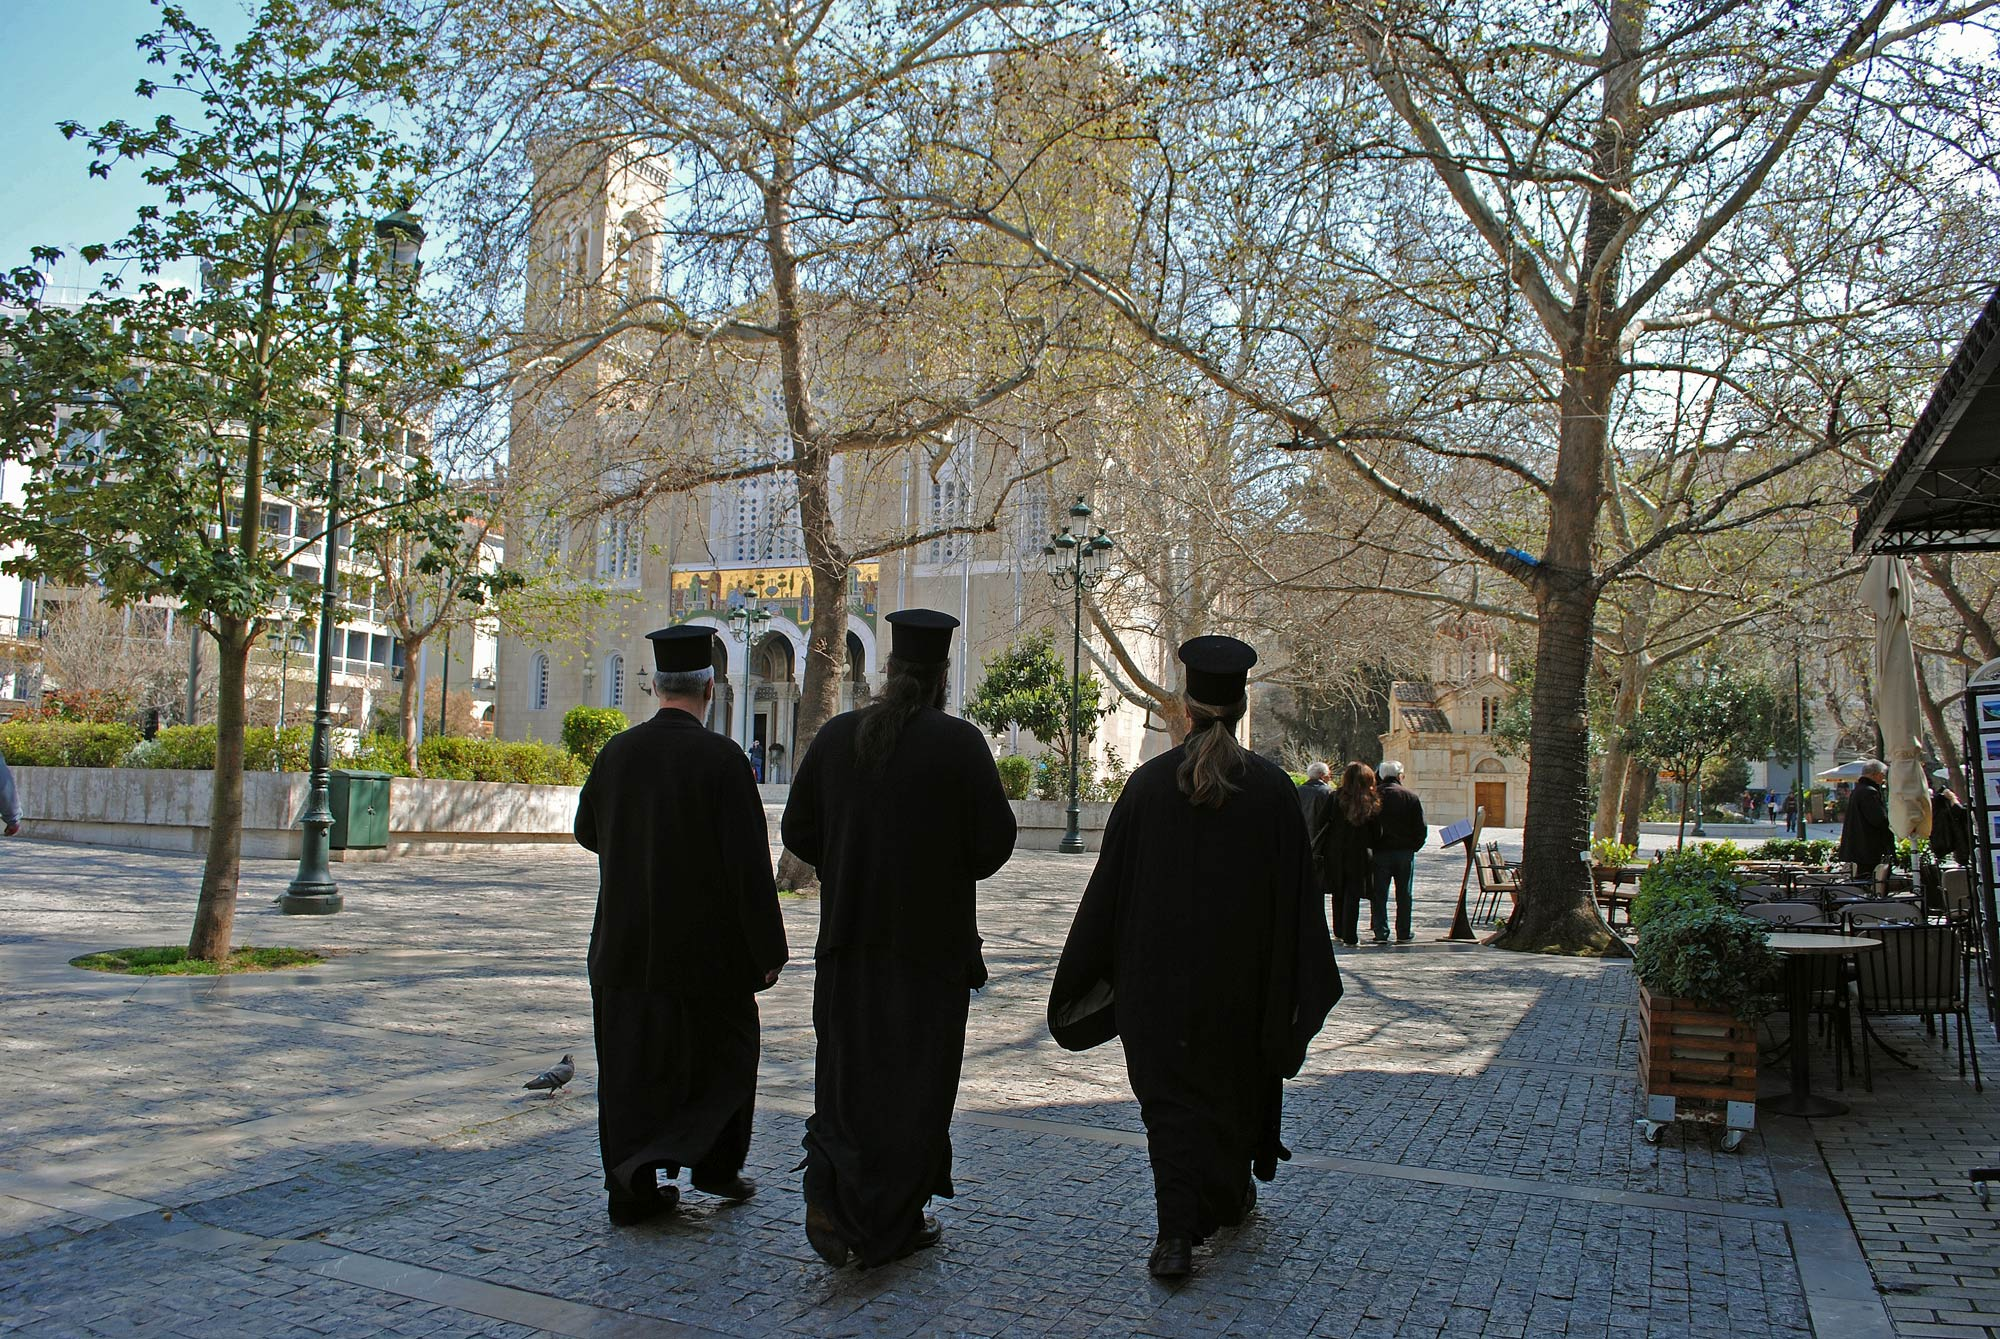 Greek Orthodox clergy walk through the streets of Athens. (Photo byJolene Latimer/GroundTruth)